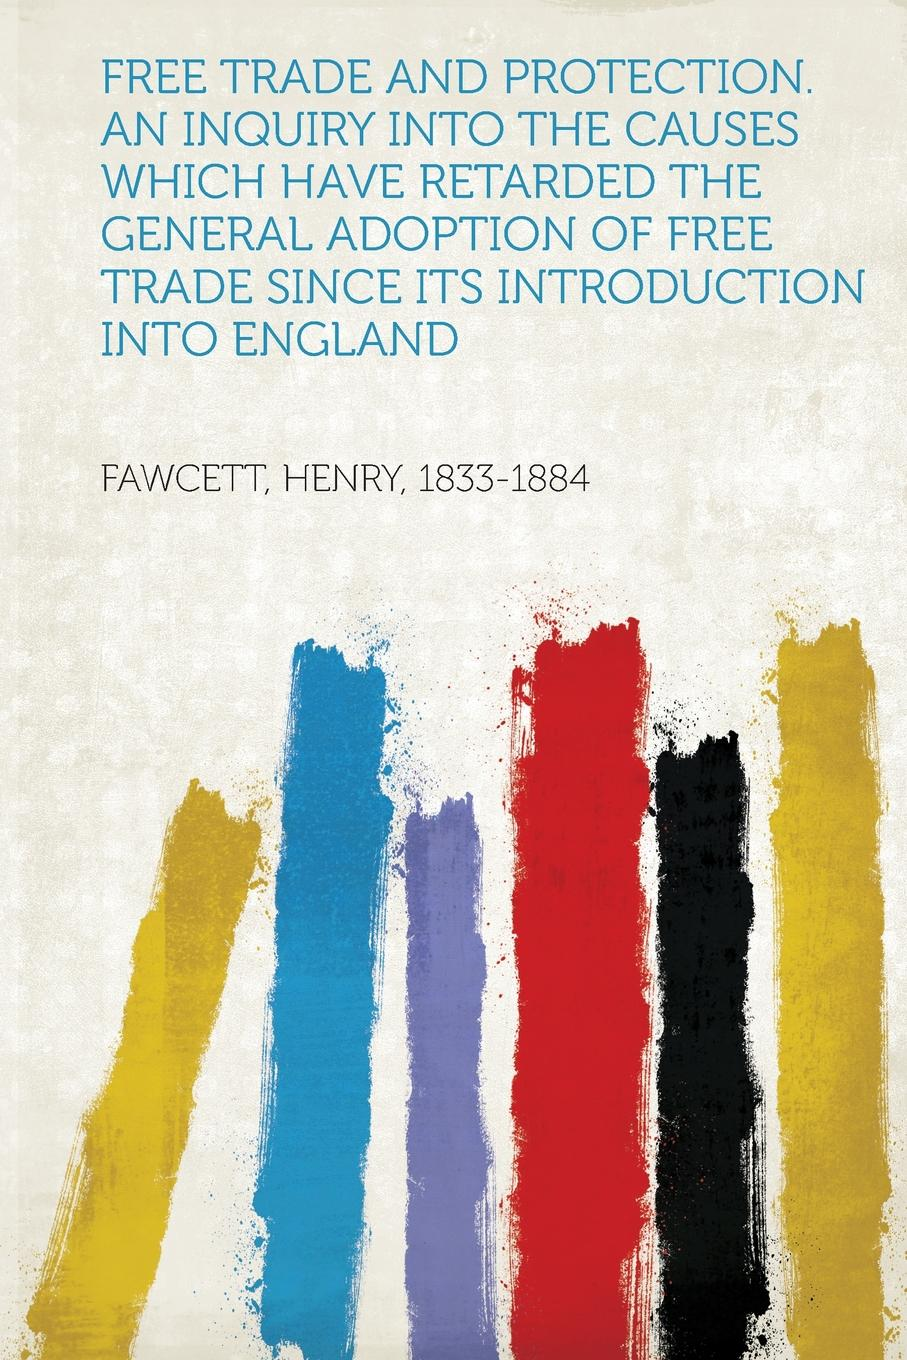 Free Trade and Protection. An Inquiry Into the Causes Which Have Retarded the General Adoption of Free Trade Since Its Introduction Into England